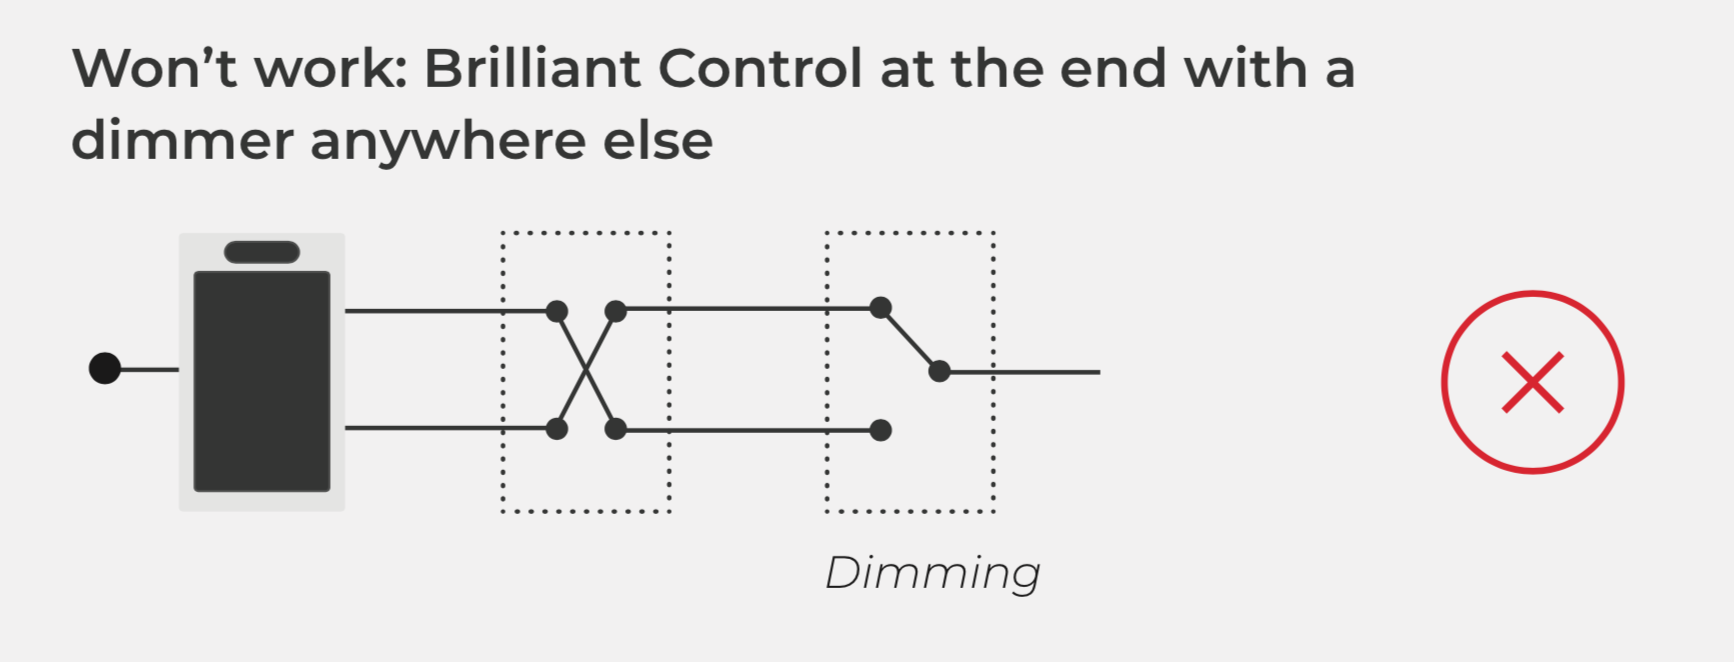 Won_t_work_-_Brilliant_Control_at_the_end_with_a_dimmer_anywhere_else.png